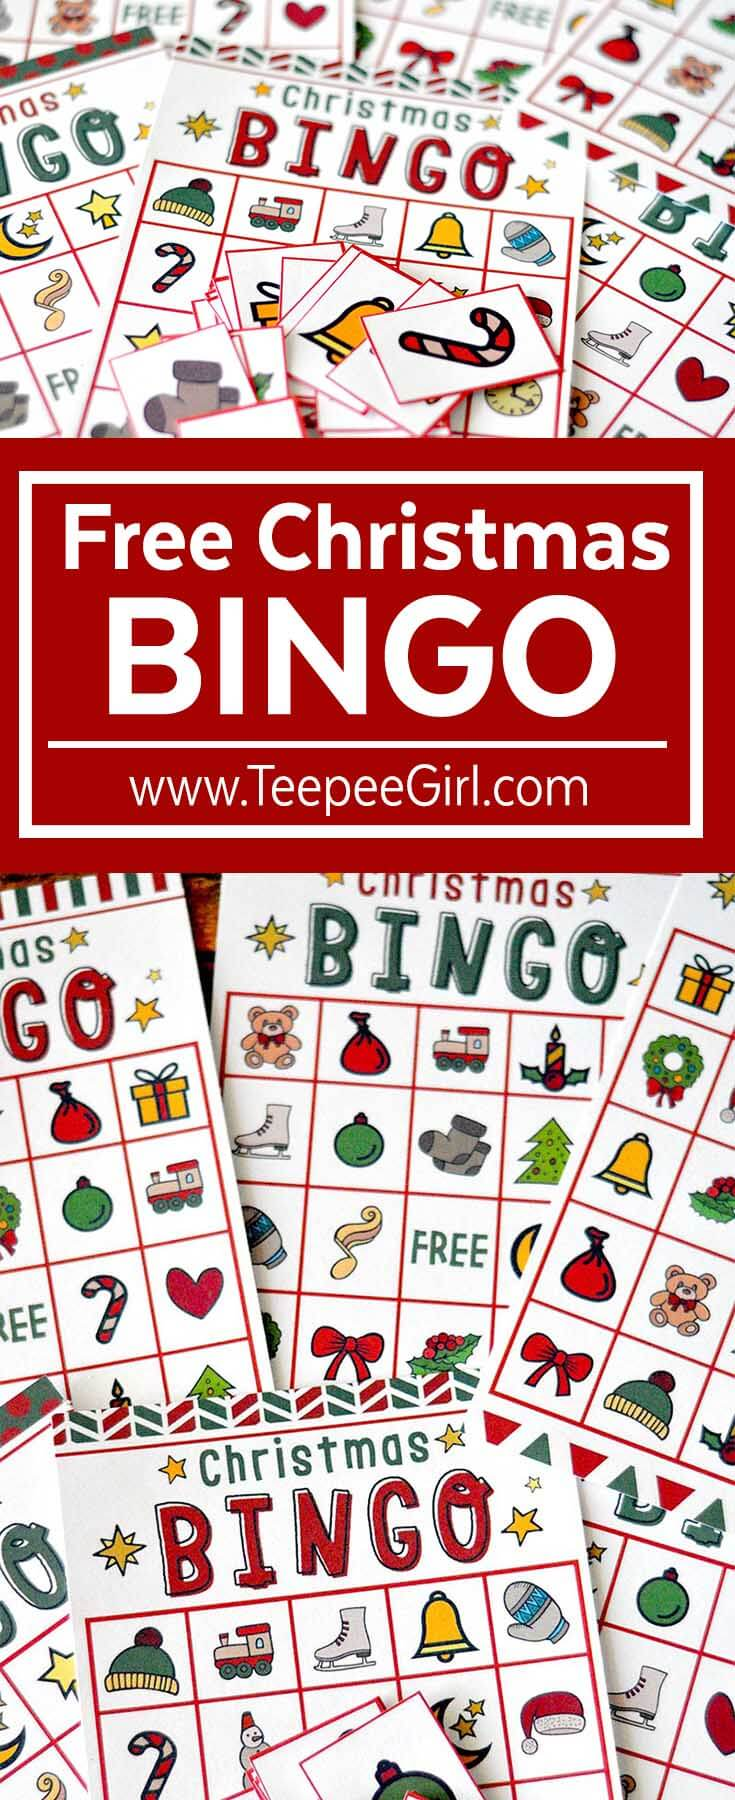 Exceptional image with free printable christmas bingo cards